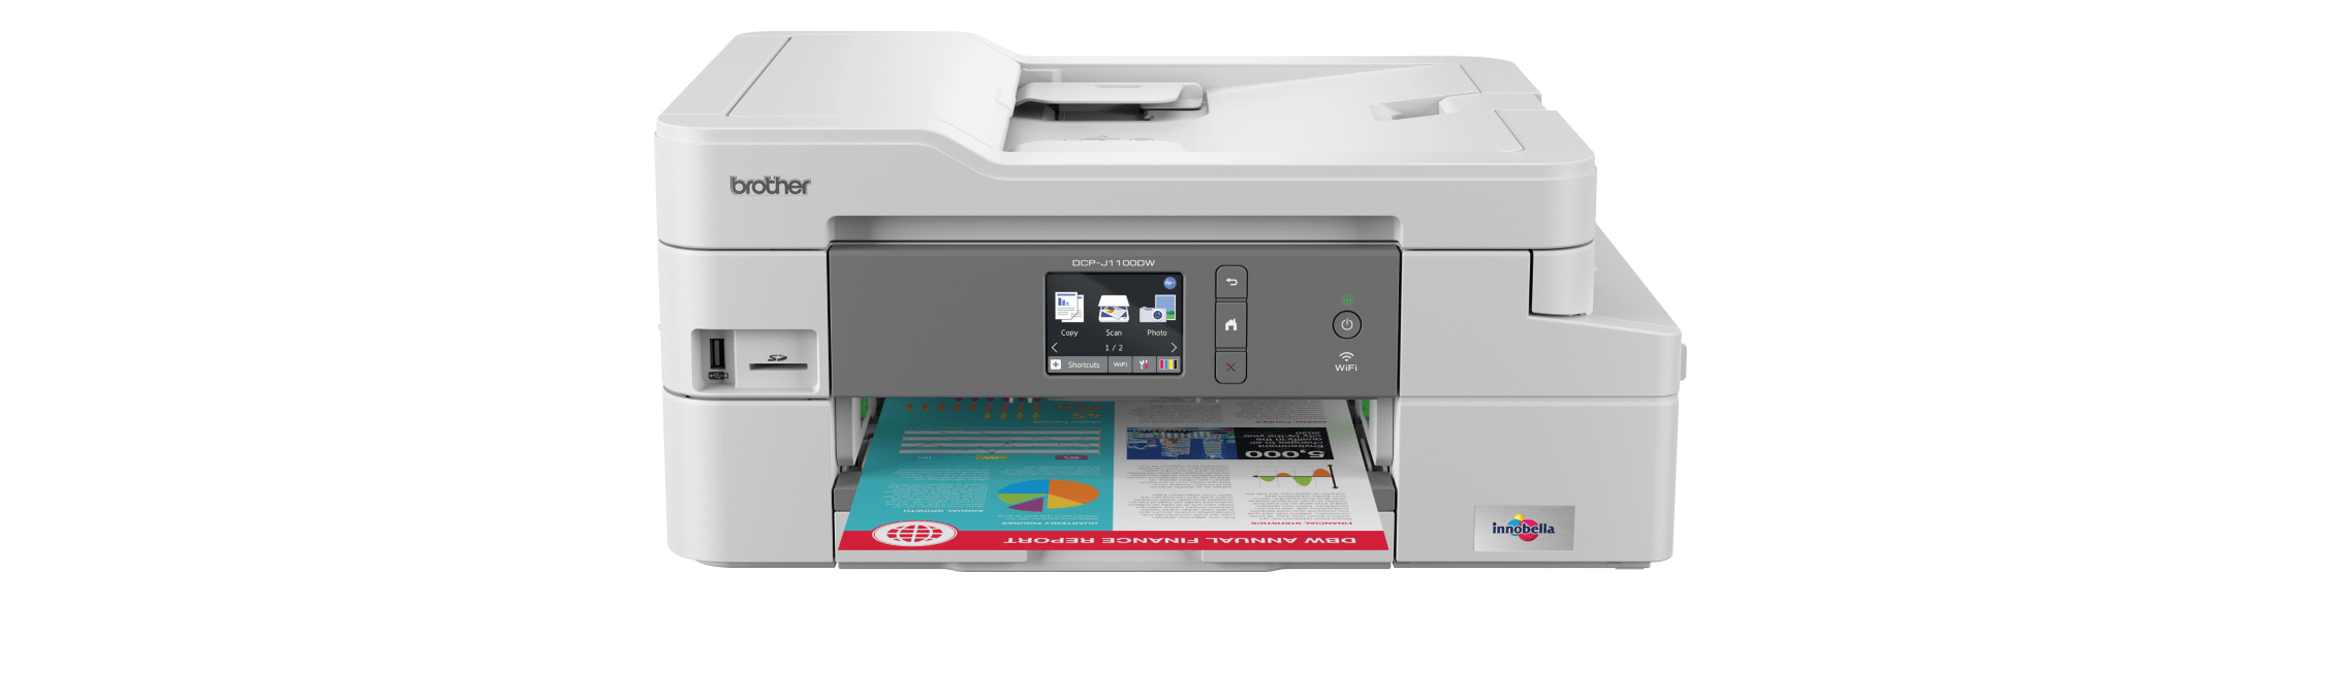 Brother DCP-J1100DW wireless 3-in-1 inkjet printer front view